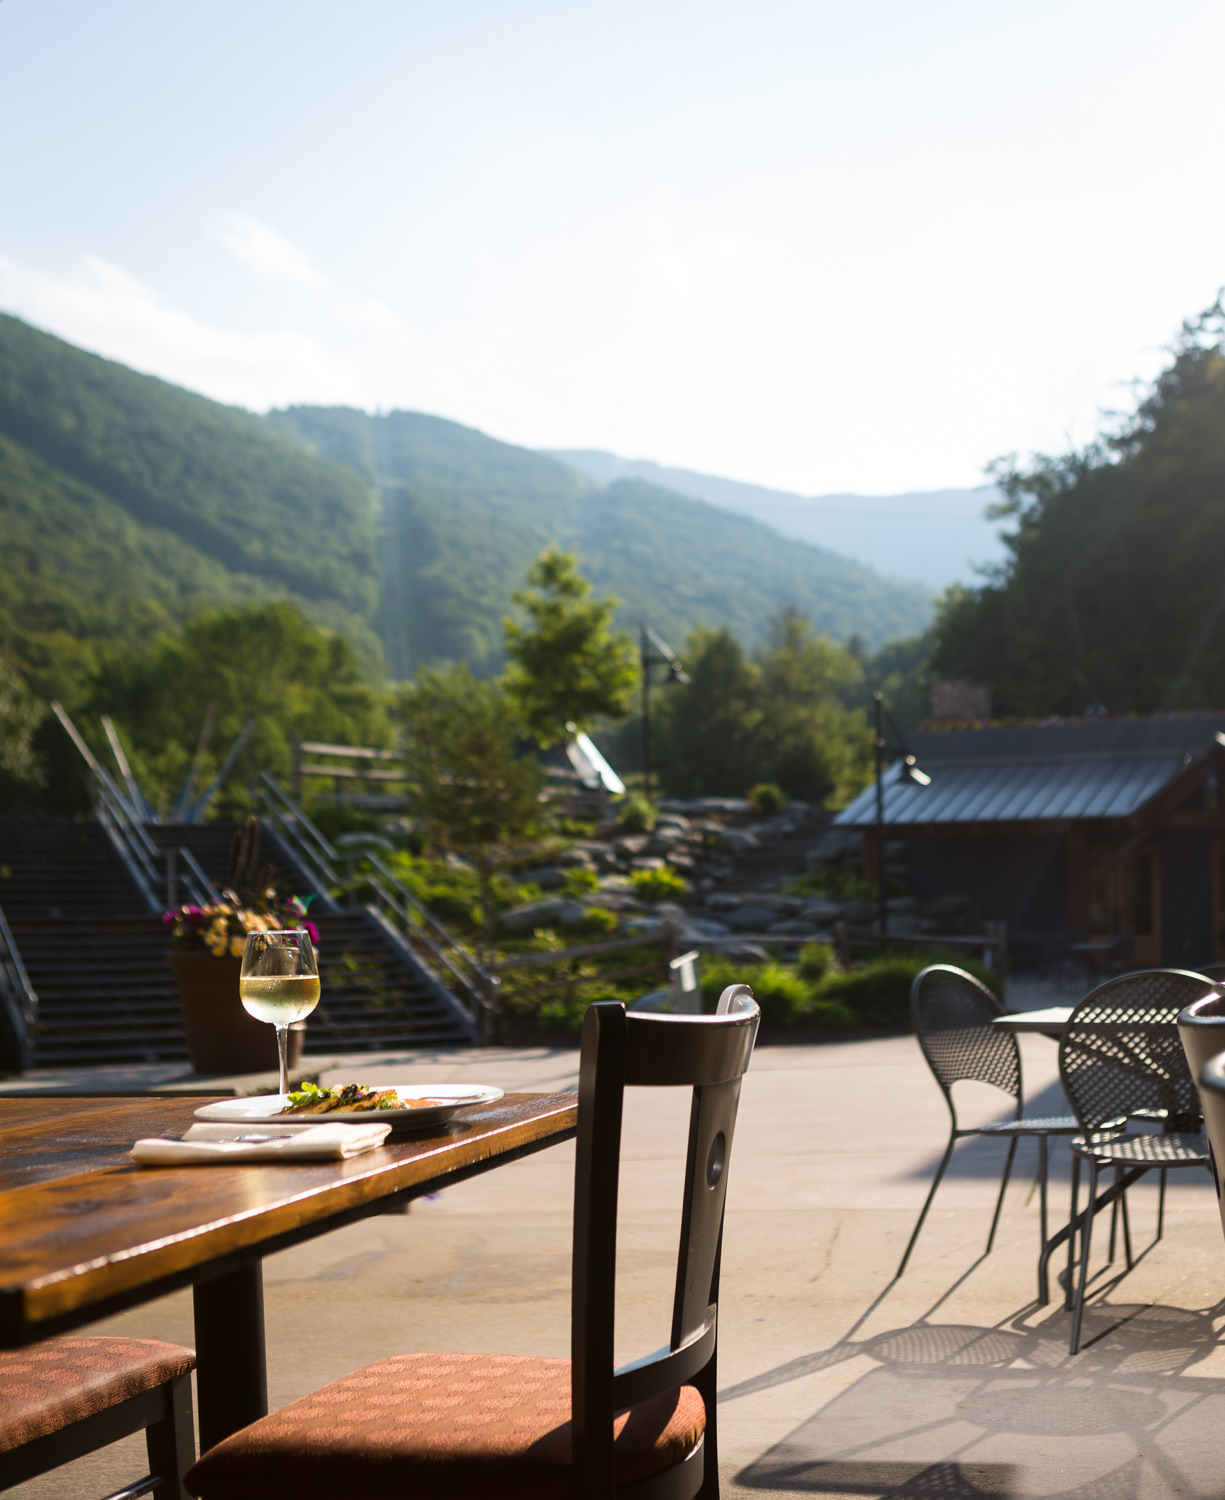 An entree from the Timbers Restaurant at the Sugarbush Resort in Vermont sits at an outdoor patio table with a view of the ski mountain in a food photo by photographer Stina Booth